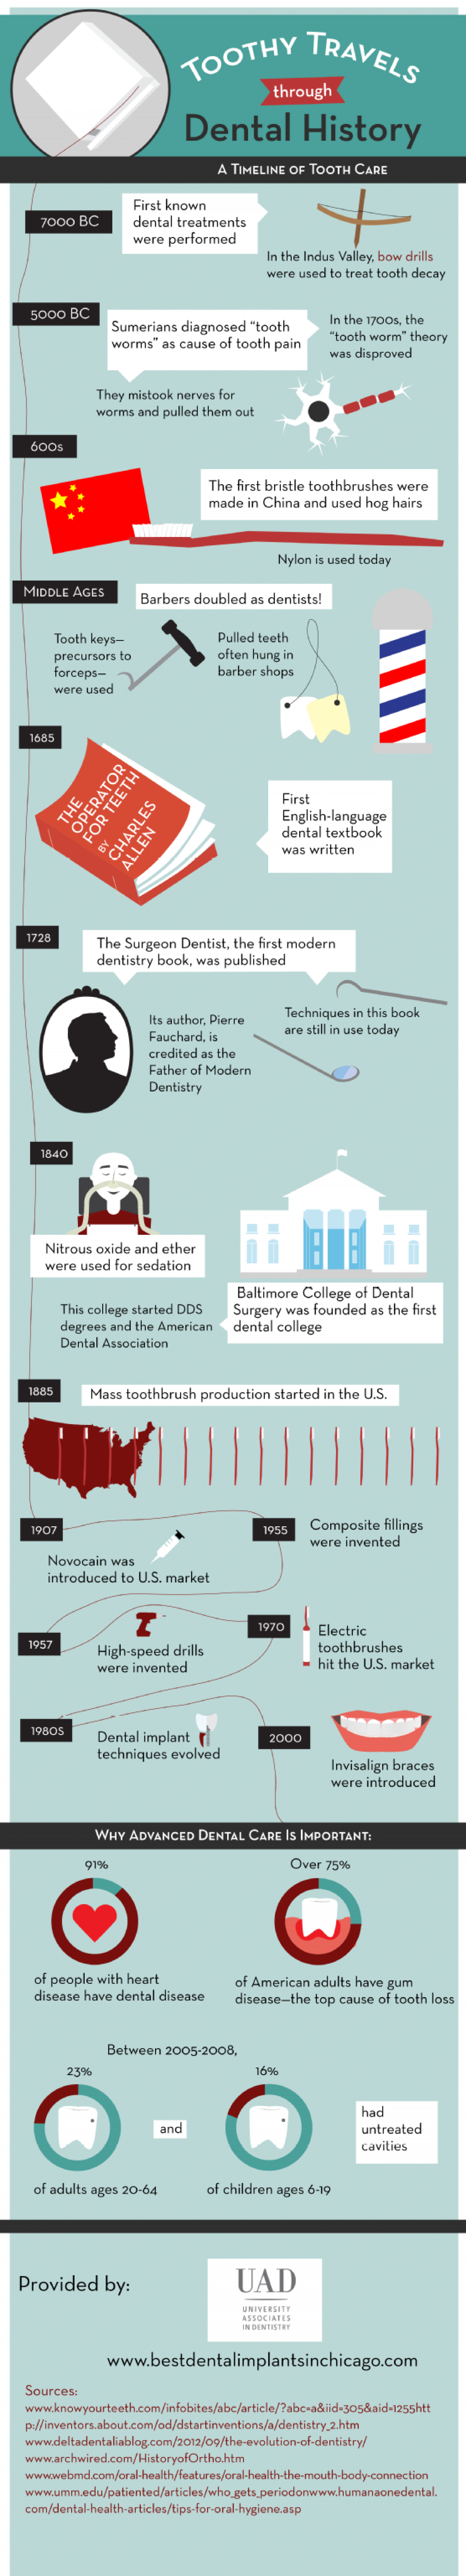 Toothy Travels through Dental History Infographic